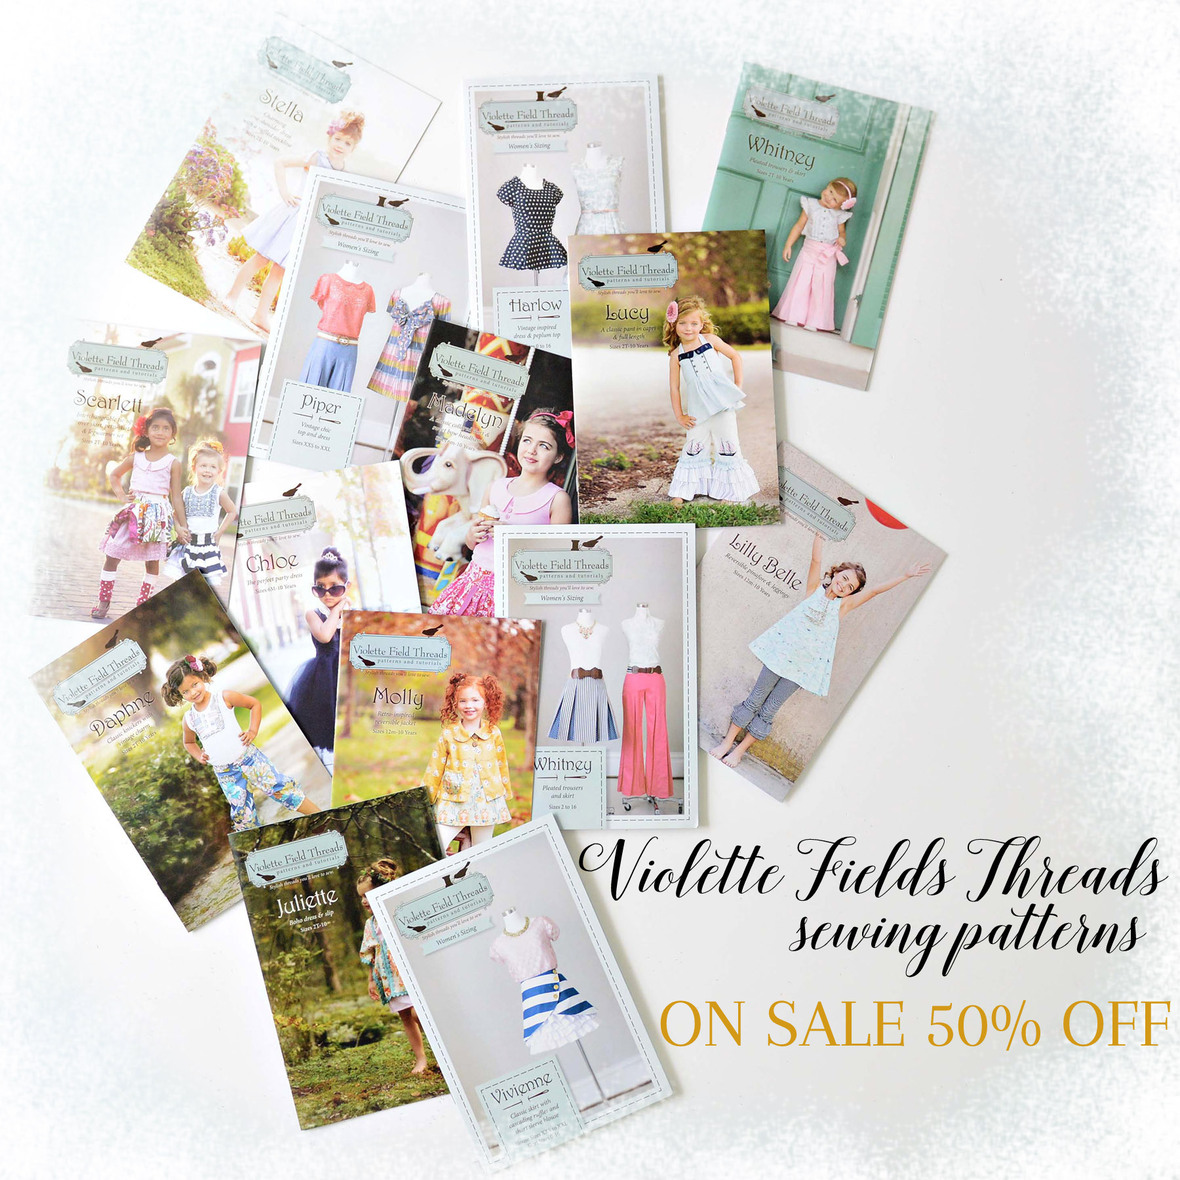 Violette Fields Threads Sewing Patterns On Sale with frosty border 6x6